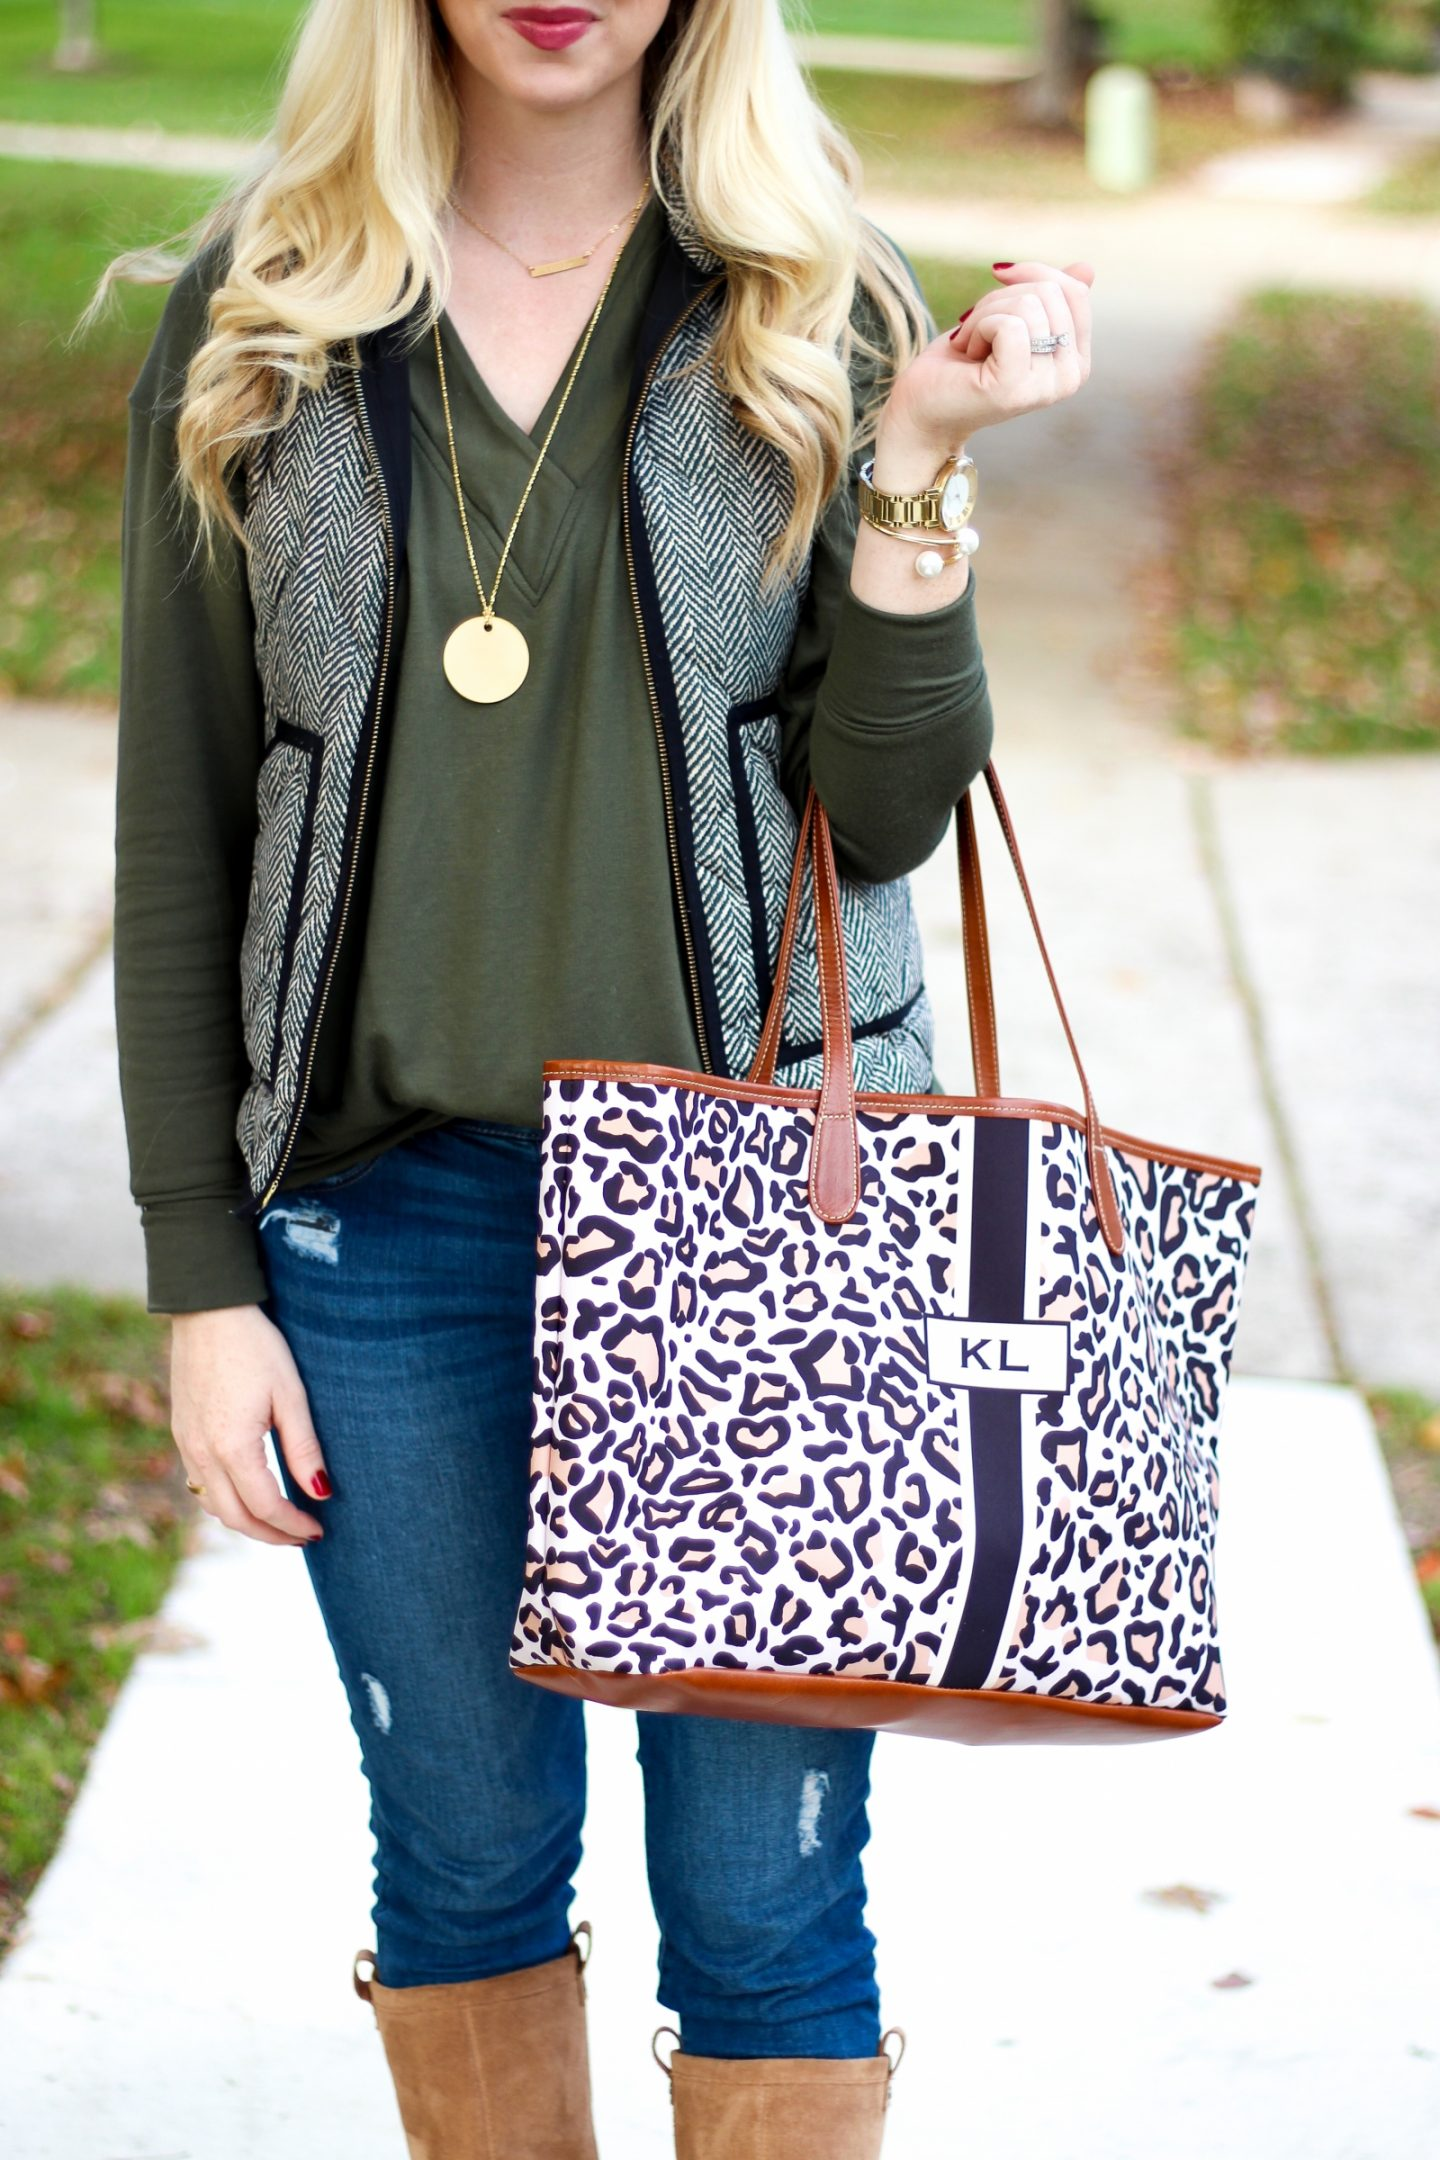 Favorite Fall Outfit in Herringbone & Leopard by Washington DC fashion blogger Styled Blonde